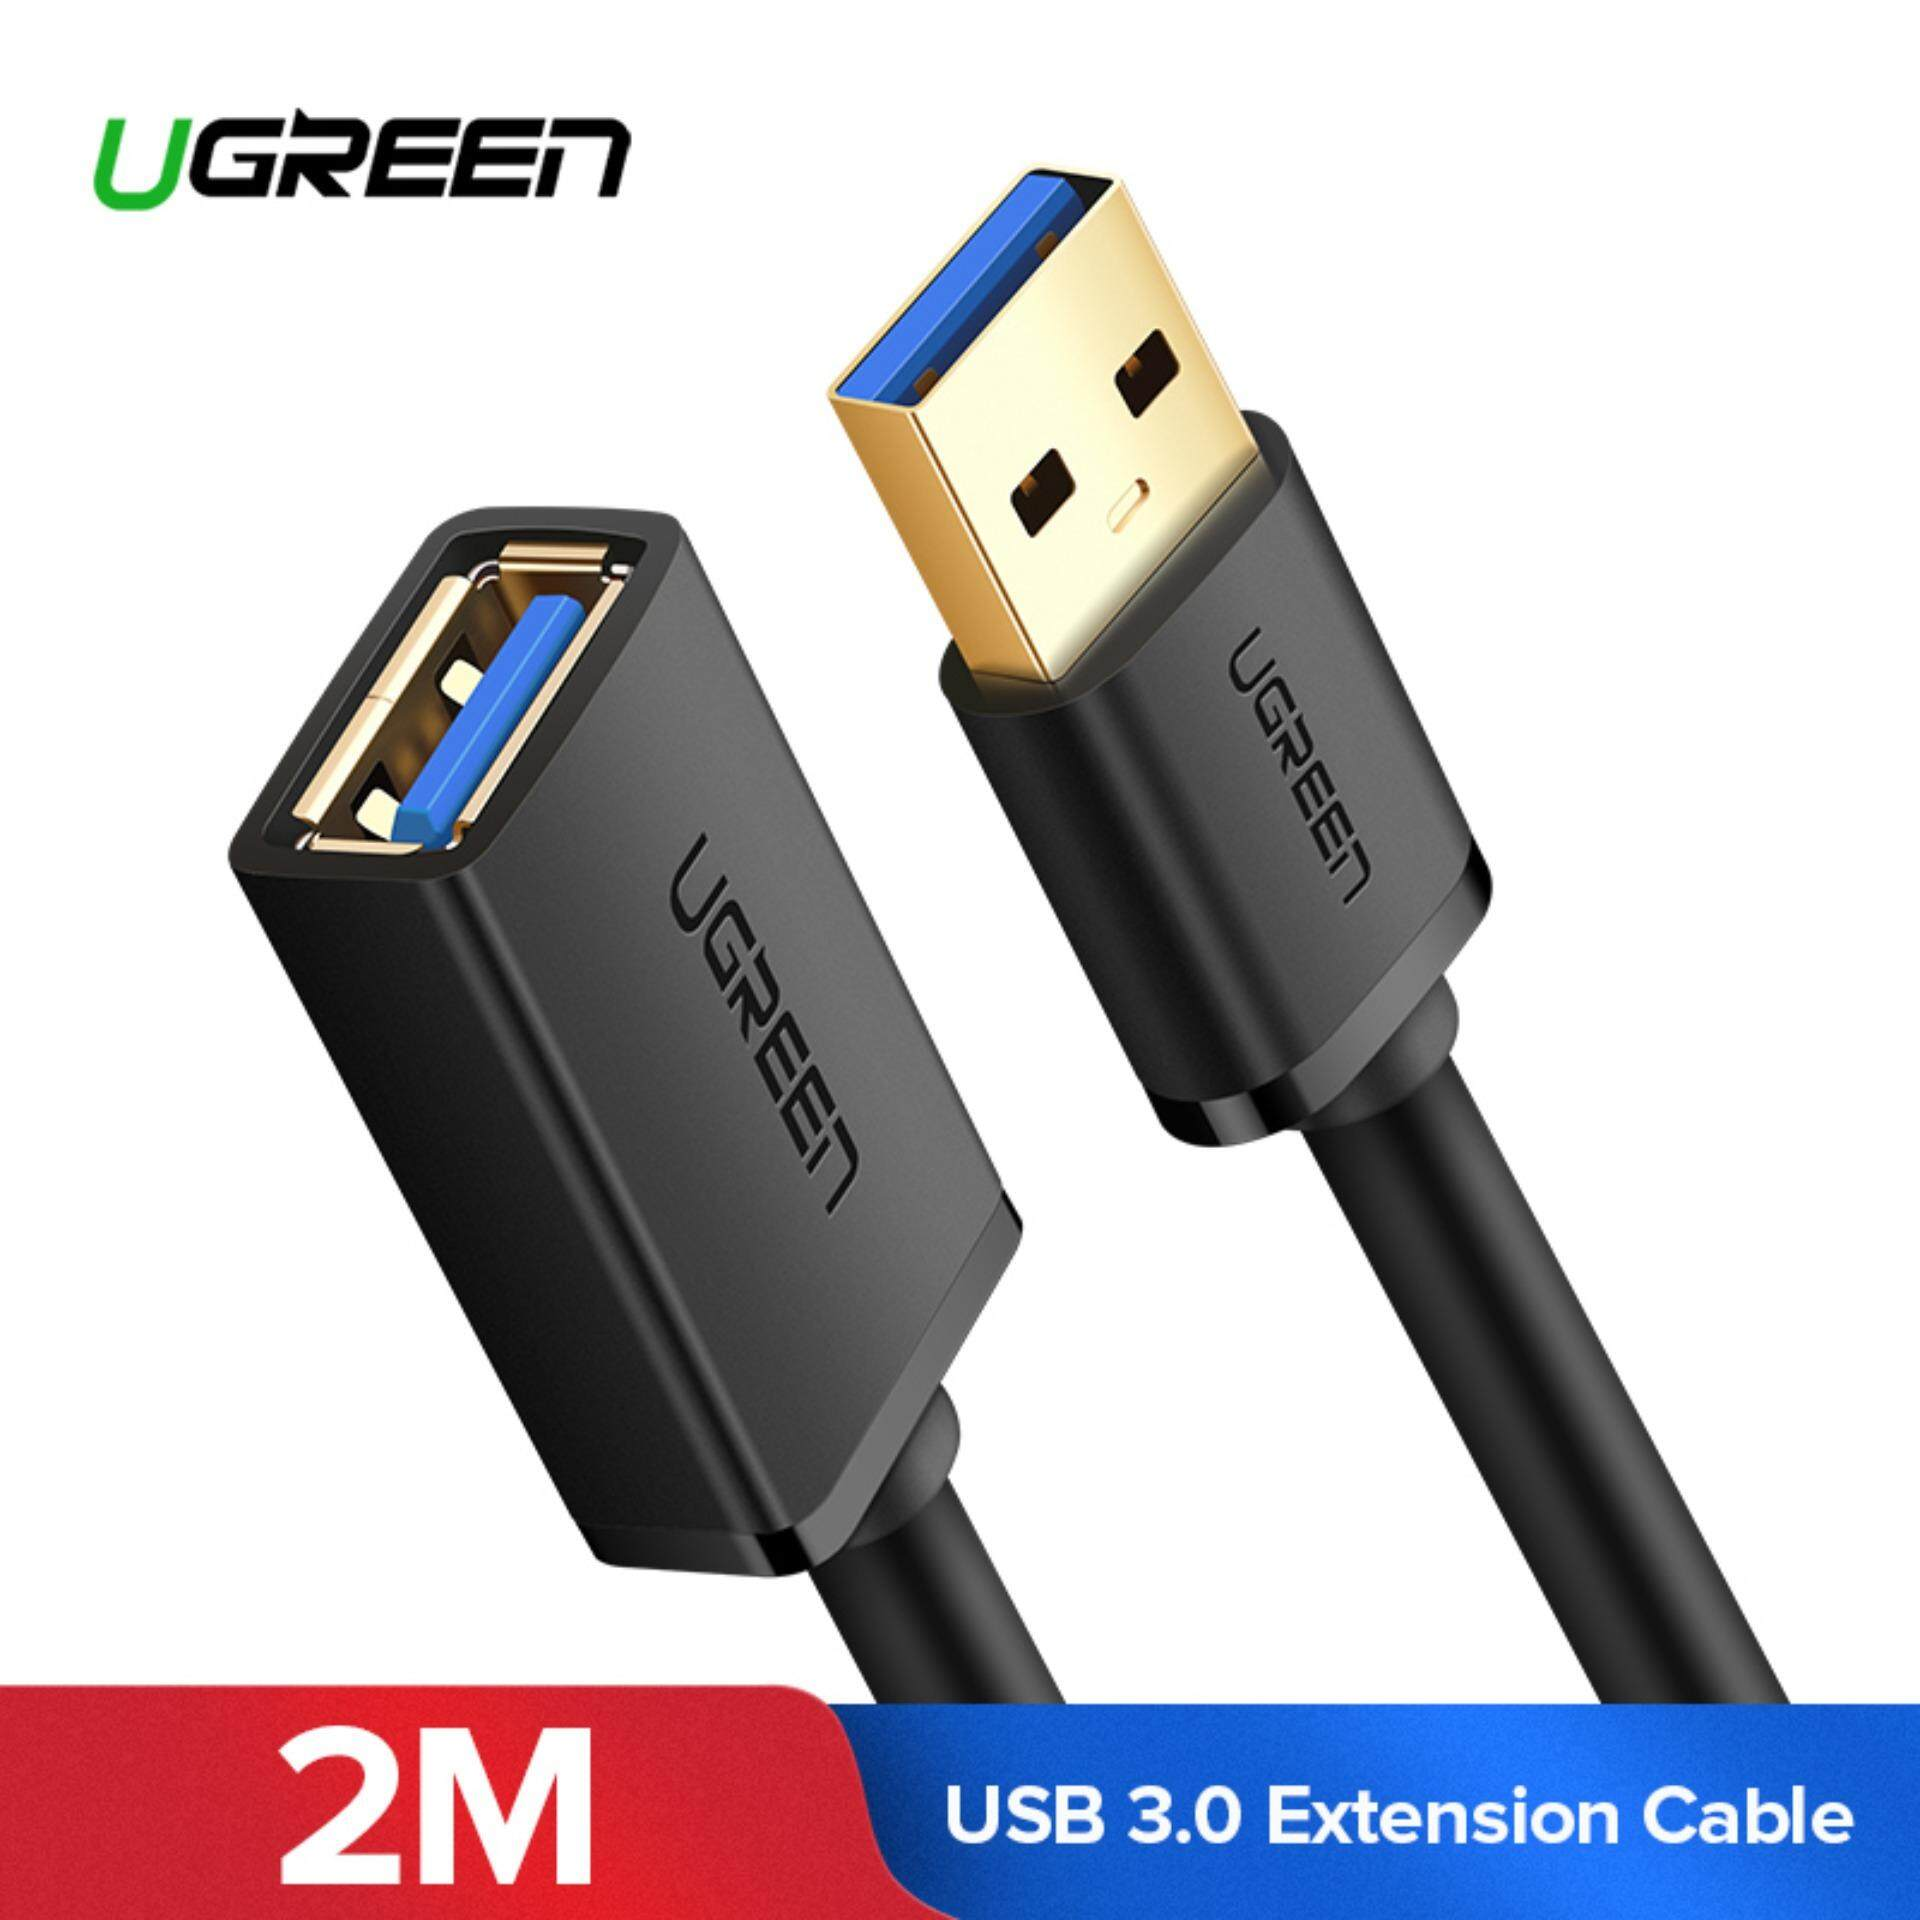 UGREEN 2Meter USB Extension Cable USB 3.0 Extender Cord Type A Male to Female Data Transfer